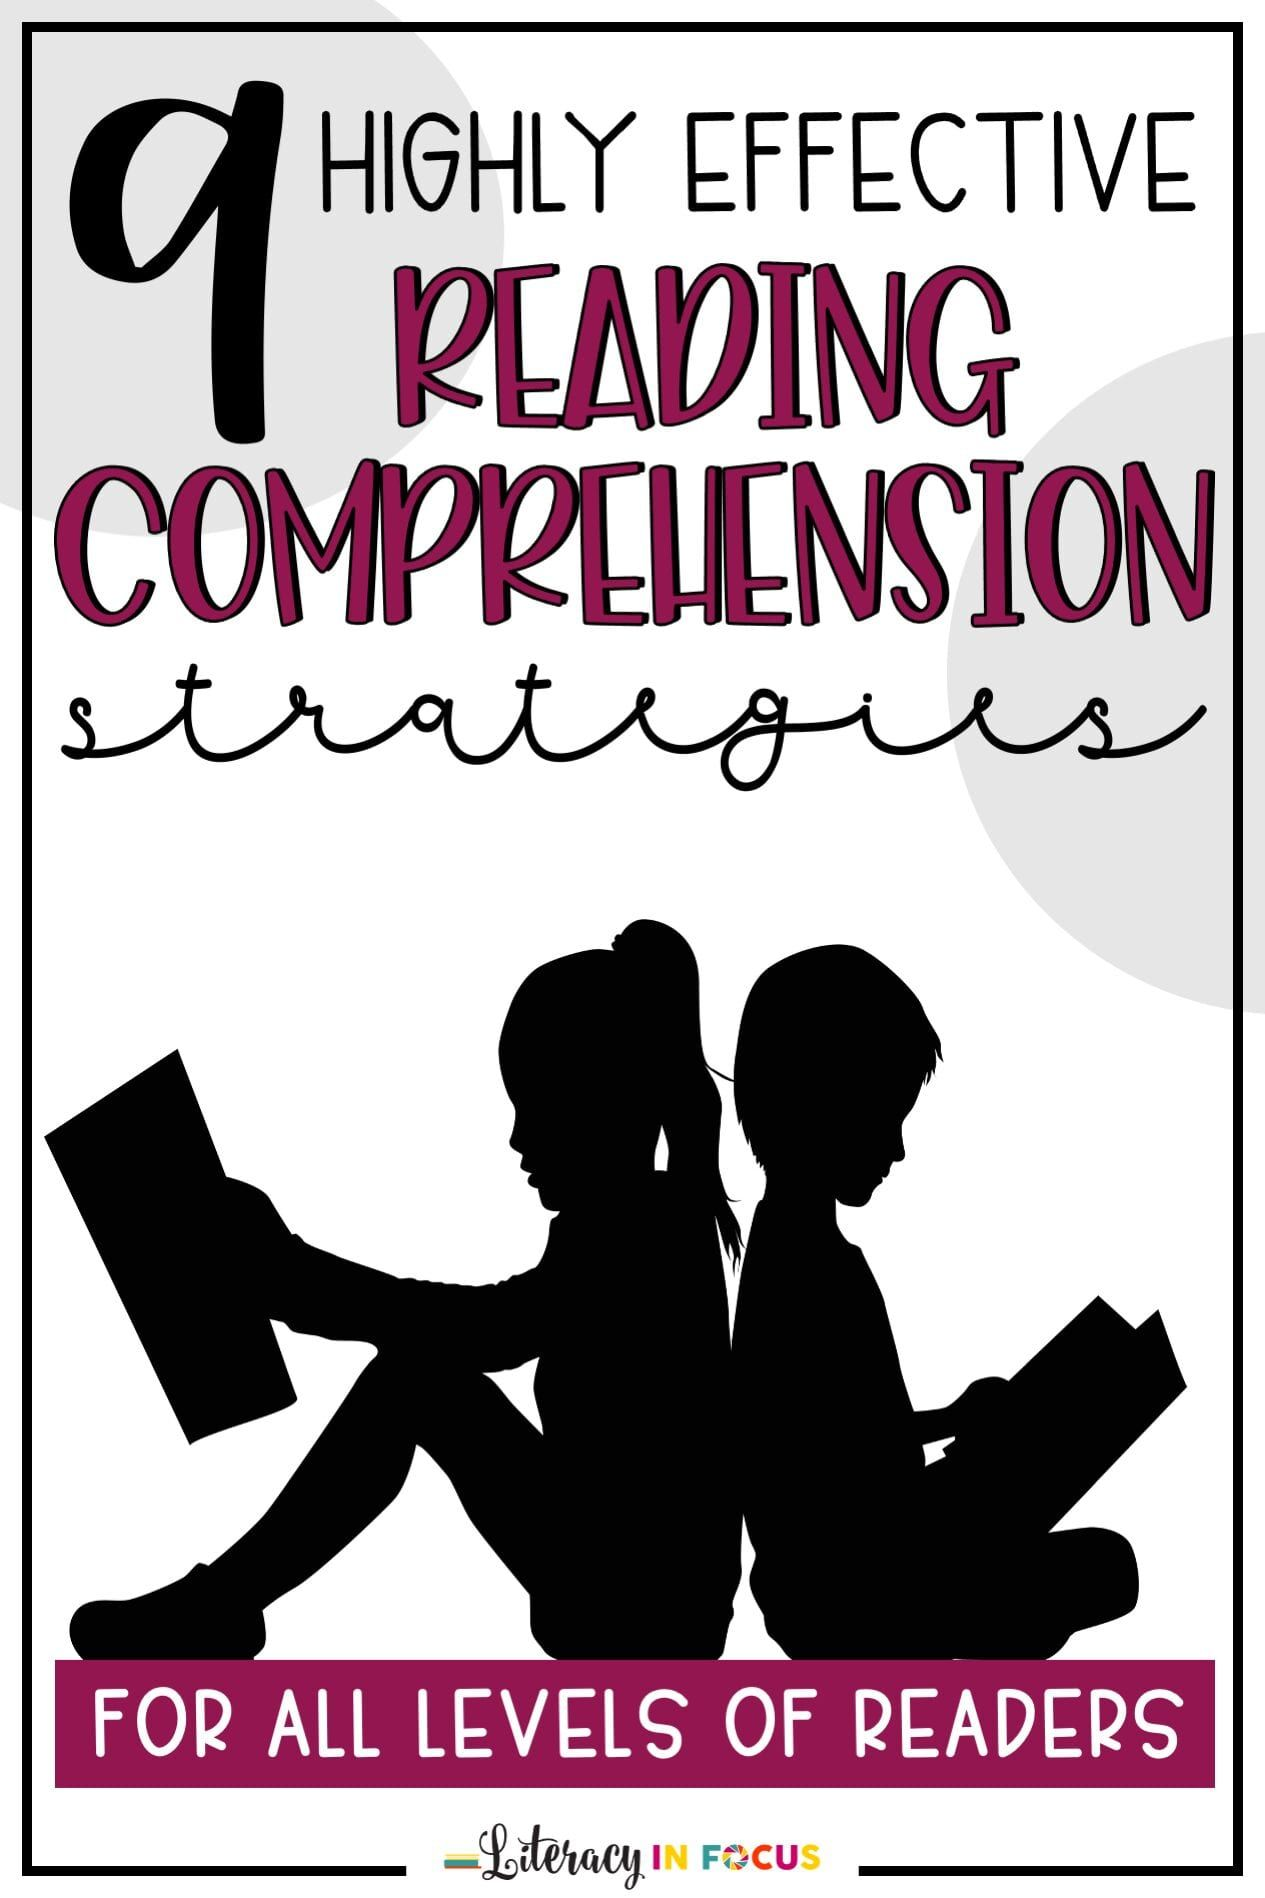 9 Highly Effective Reading Comprehension Strategies For All Levels Of Readers Reading Comprehension Reading Comprehension Strategies Reciprocal Teaching [ 1898 x 1265 Pixel ]